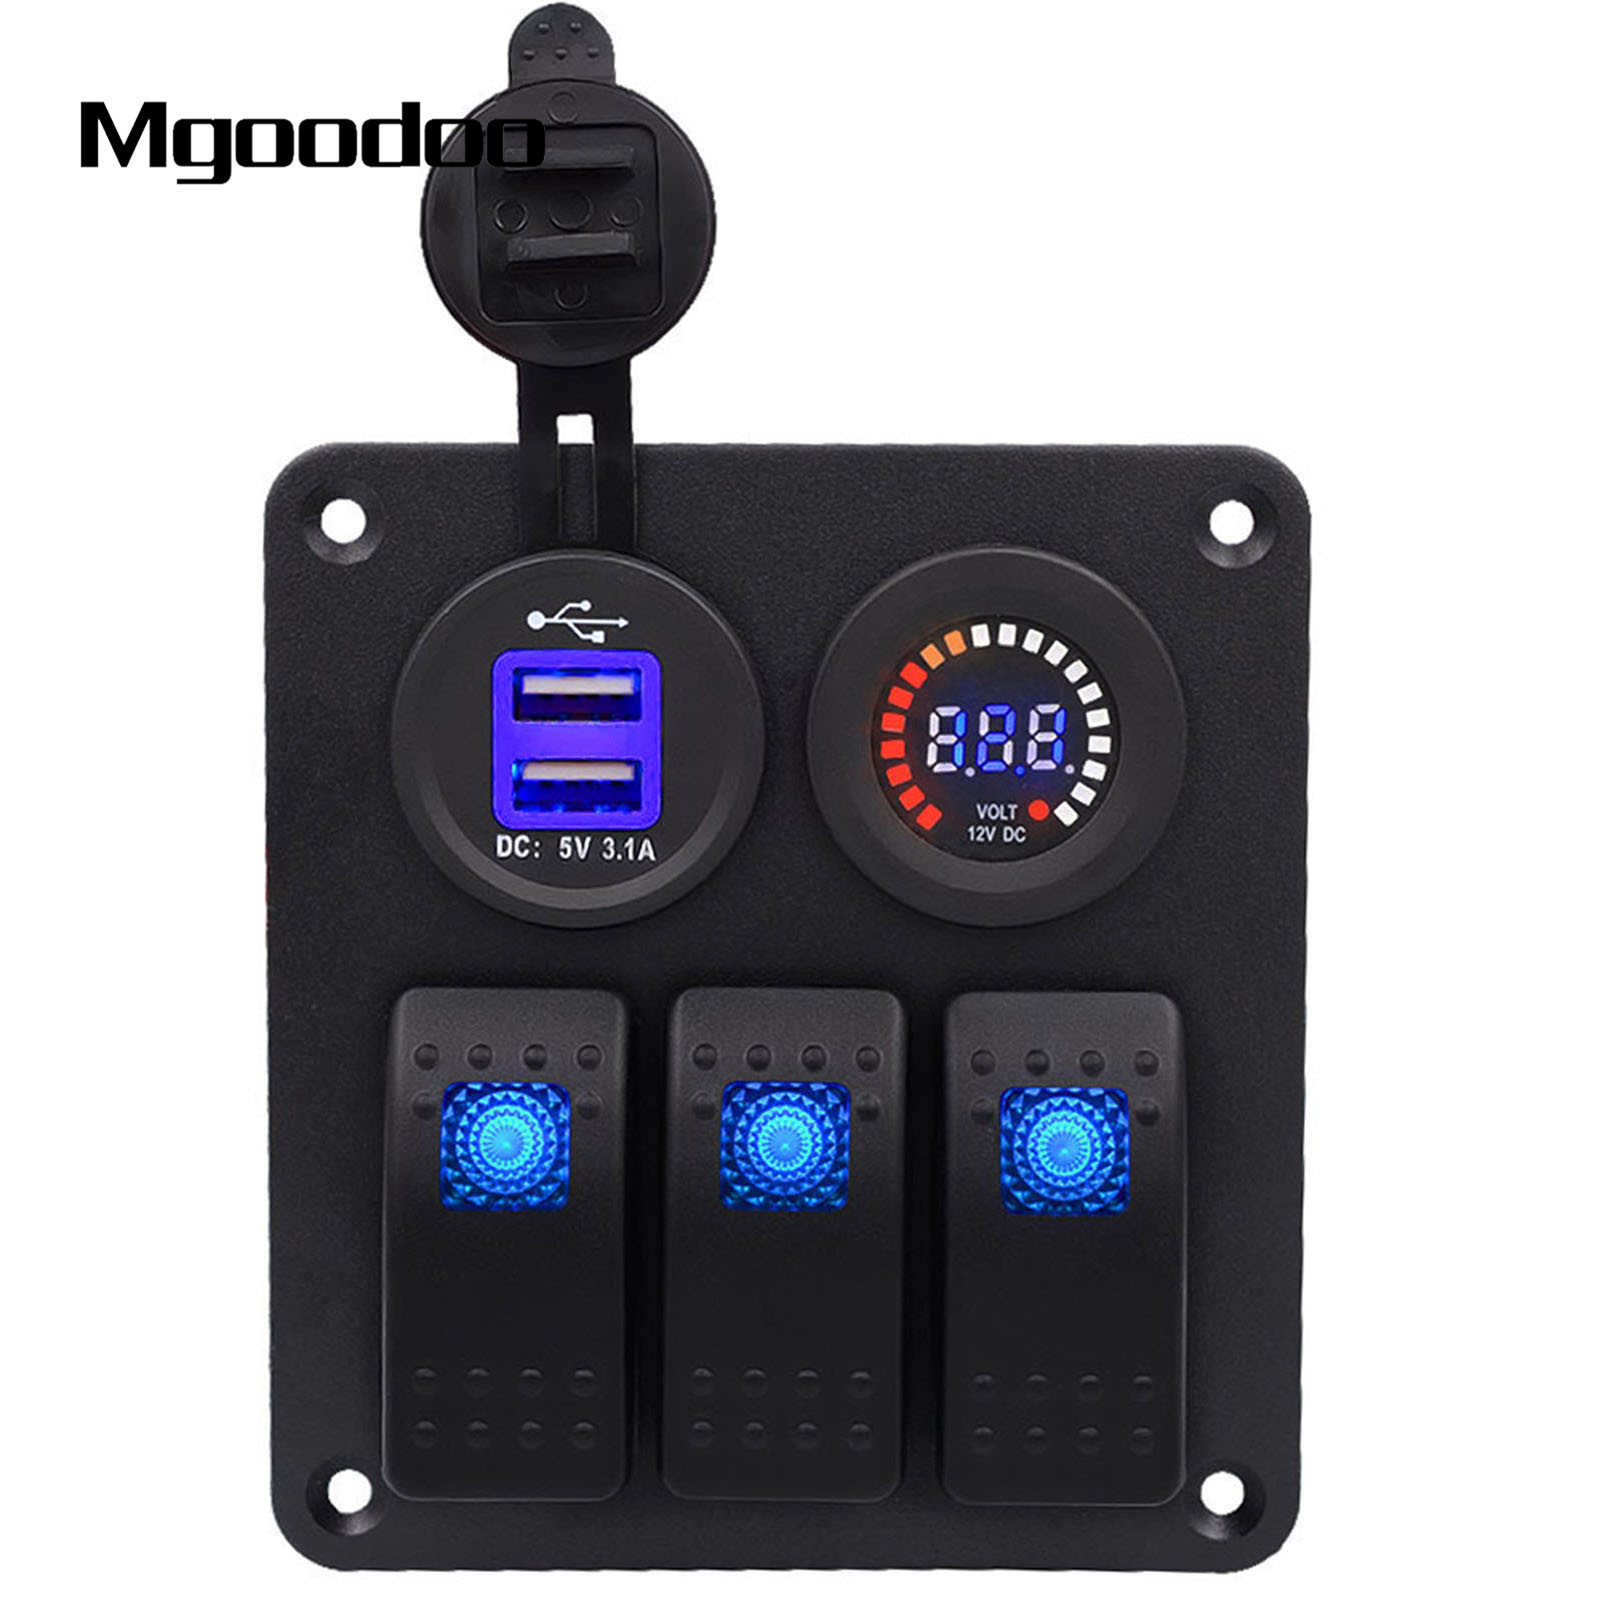 Mgoodoo 3 Gang Rocker Switch Panel W/ Voltmeter DC 12V/24V Dual USB Charge Slot Waterproof For Marine Boat Car Van Vehicle Truck недорого